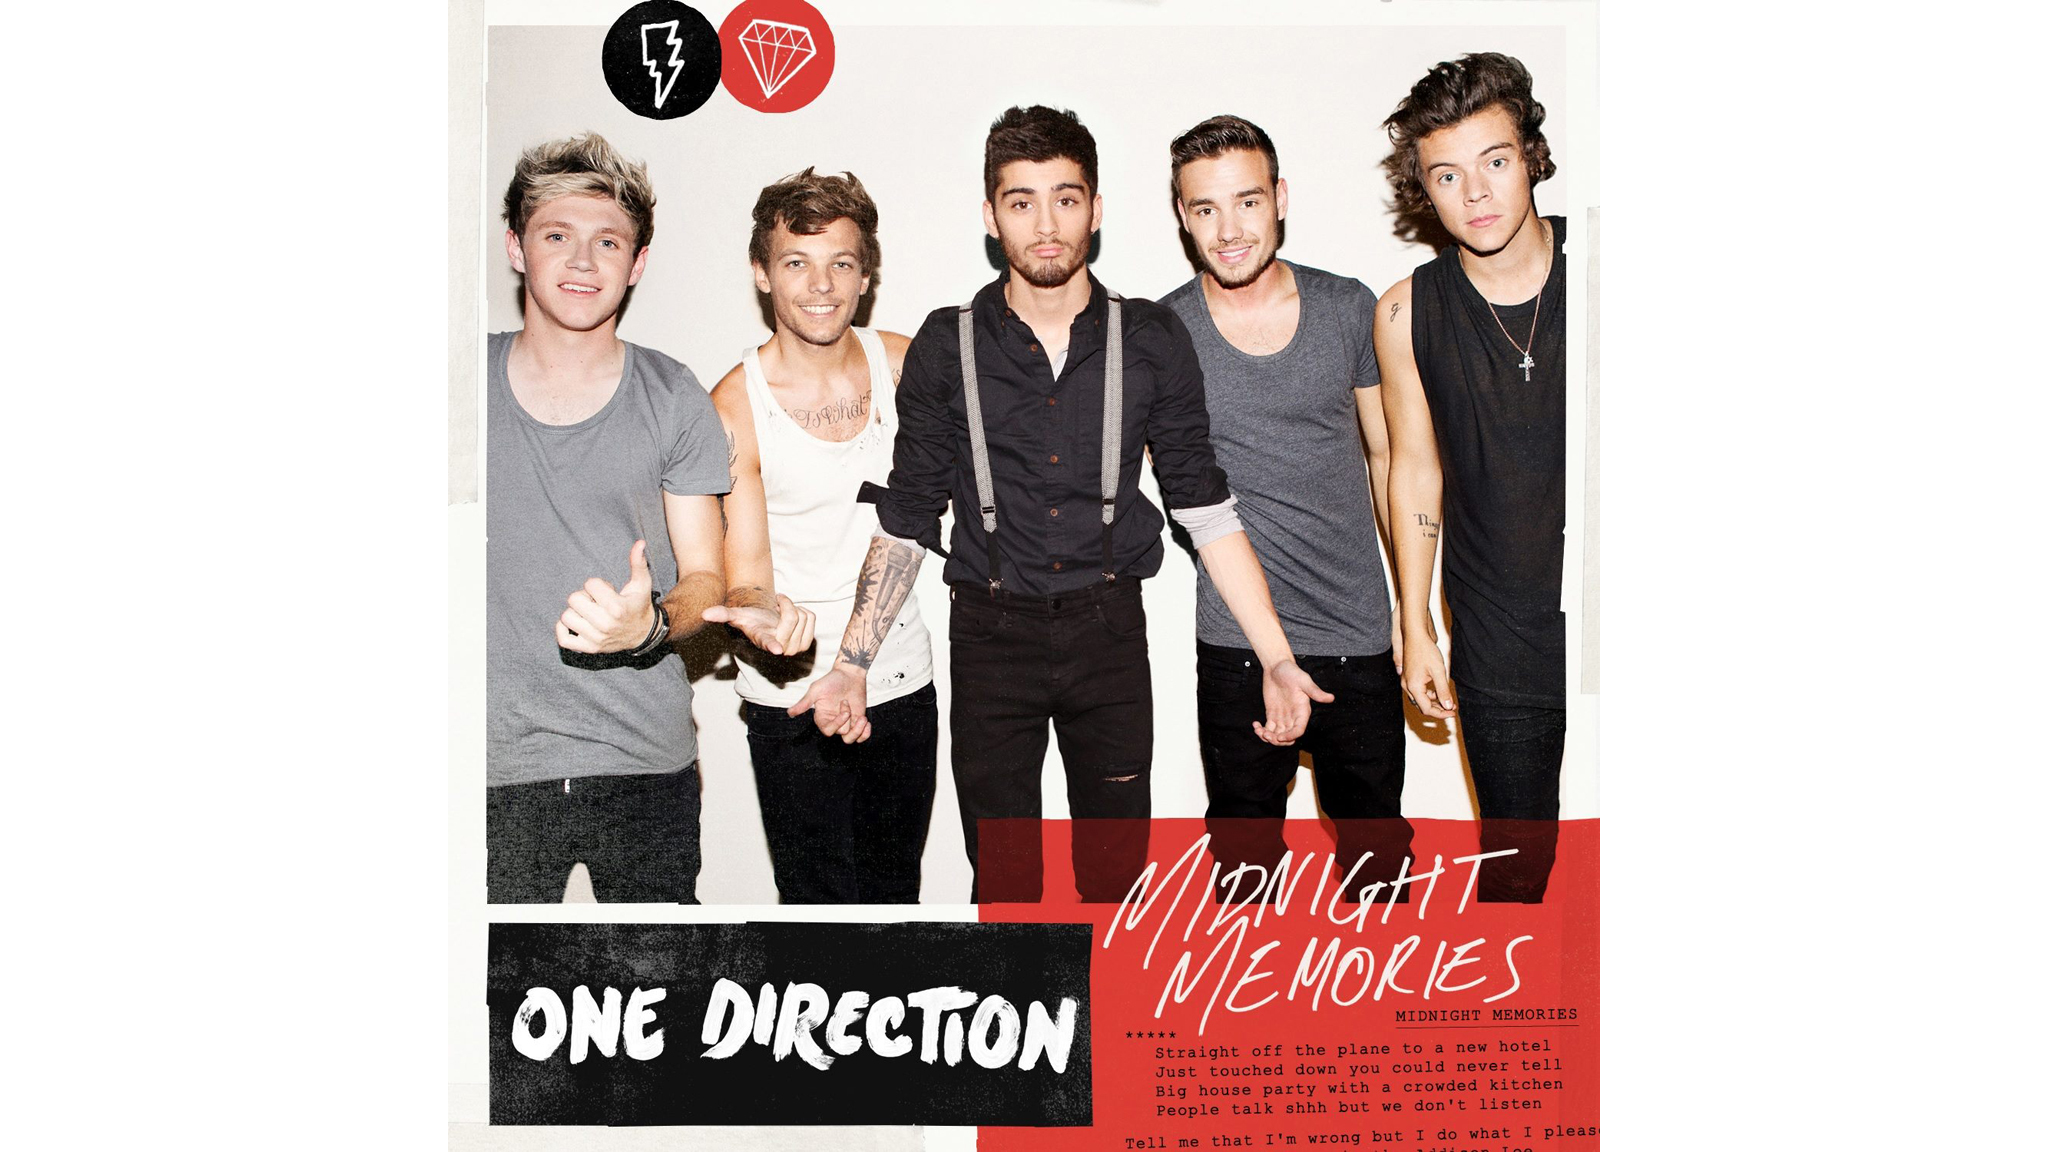 20 best One Direction songs, from 'Little Things' to 'Steal My Girl'